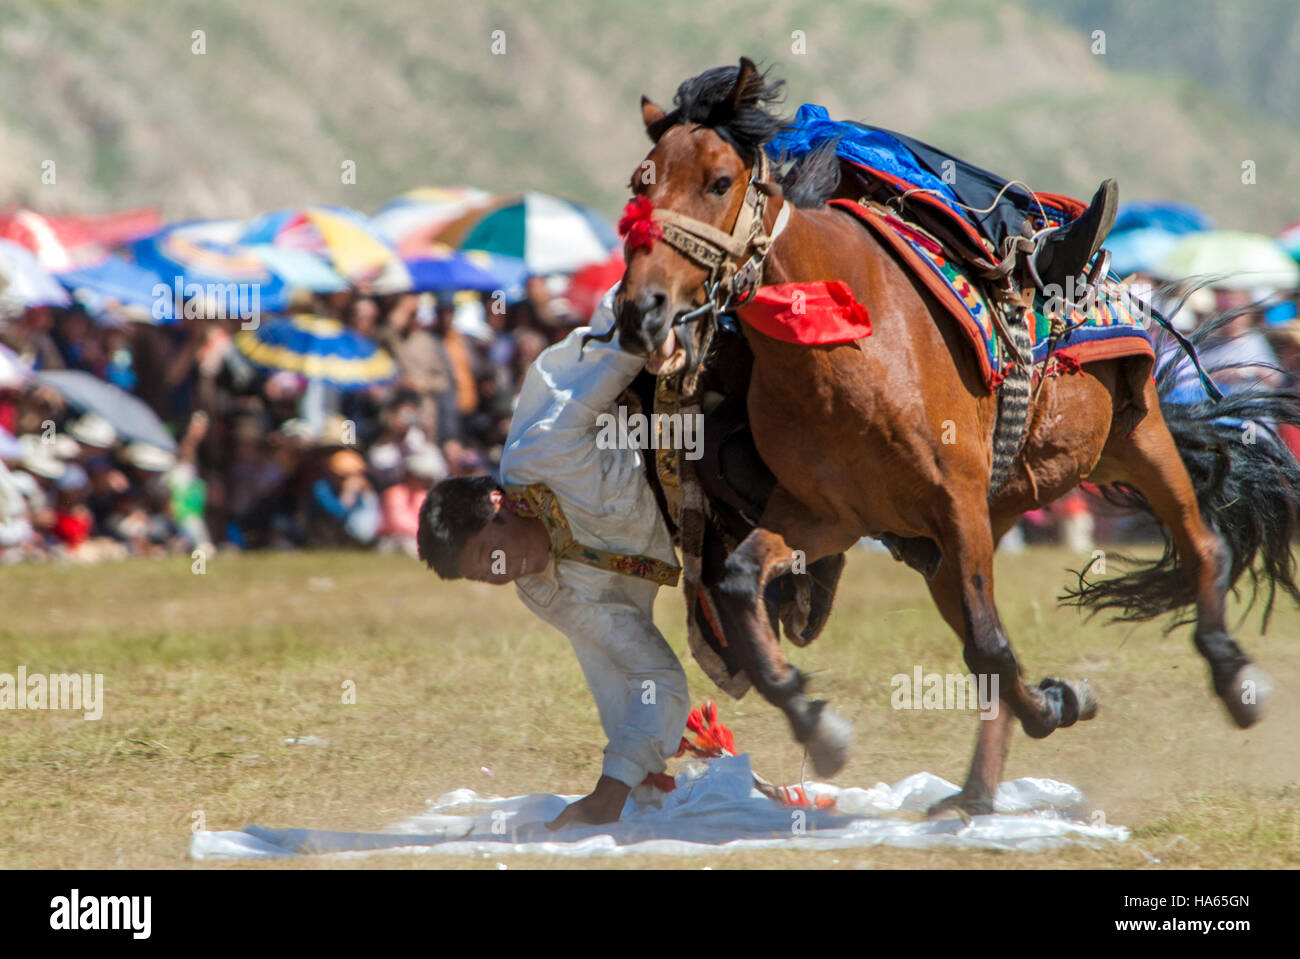 A Khampa horseman practices picking up silk scarves from the back of a galloping horse at the Yushu Horse Racing - Stock Image